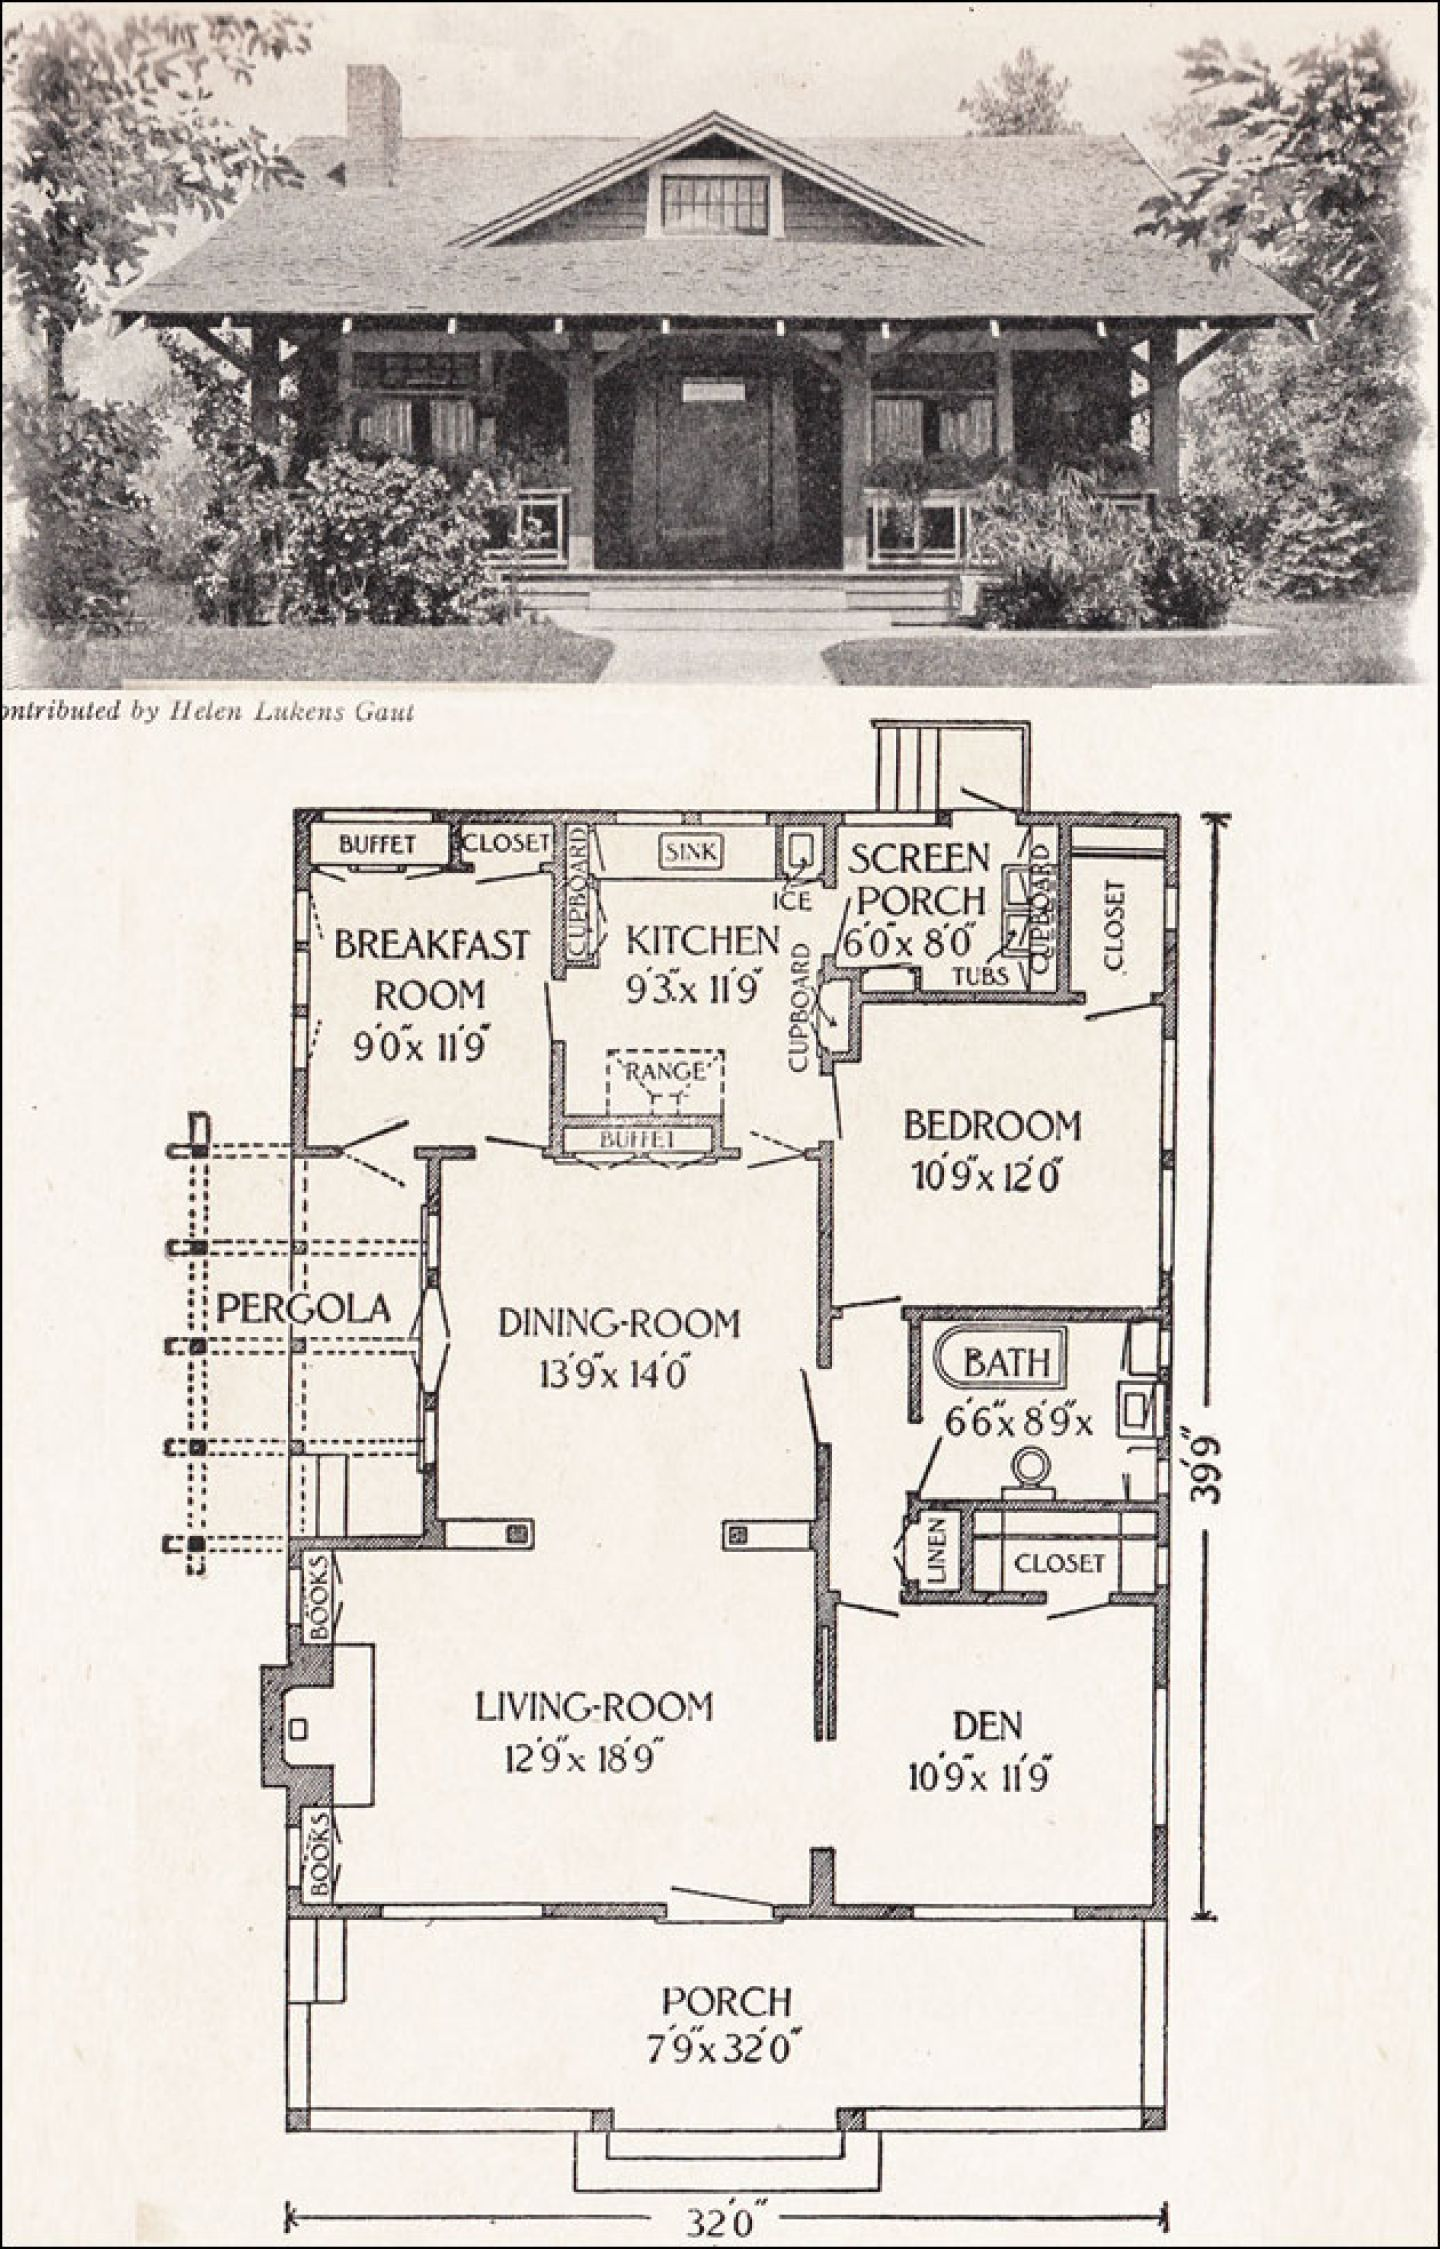 Beach bungalow house plan 168 beach bungalow house design Traditional bungalow house plans